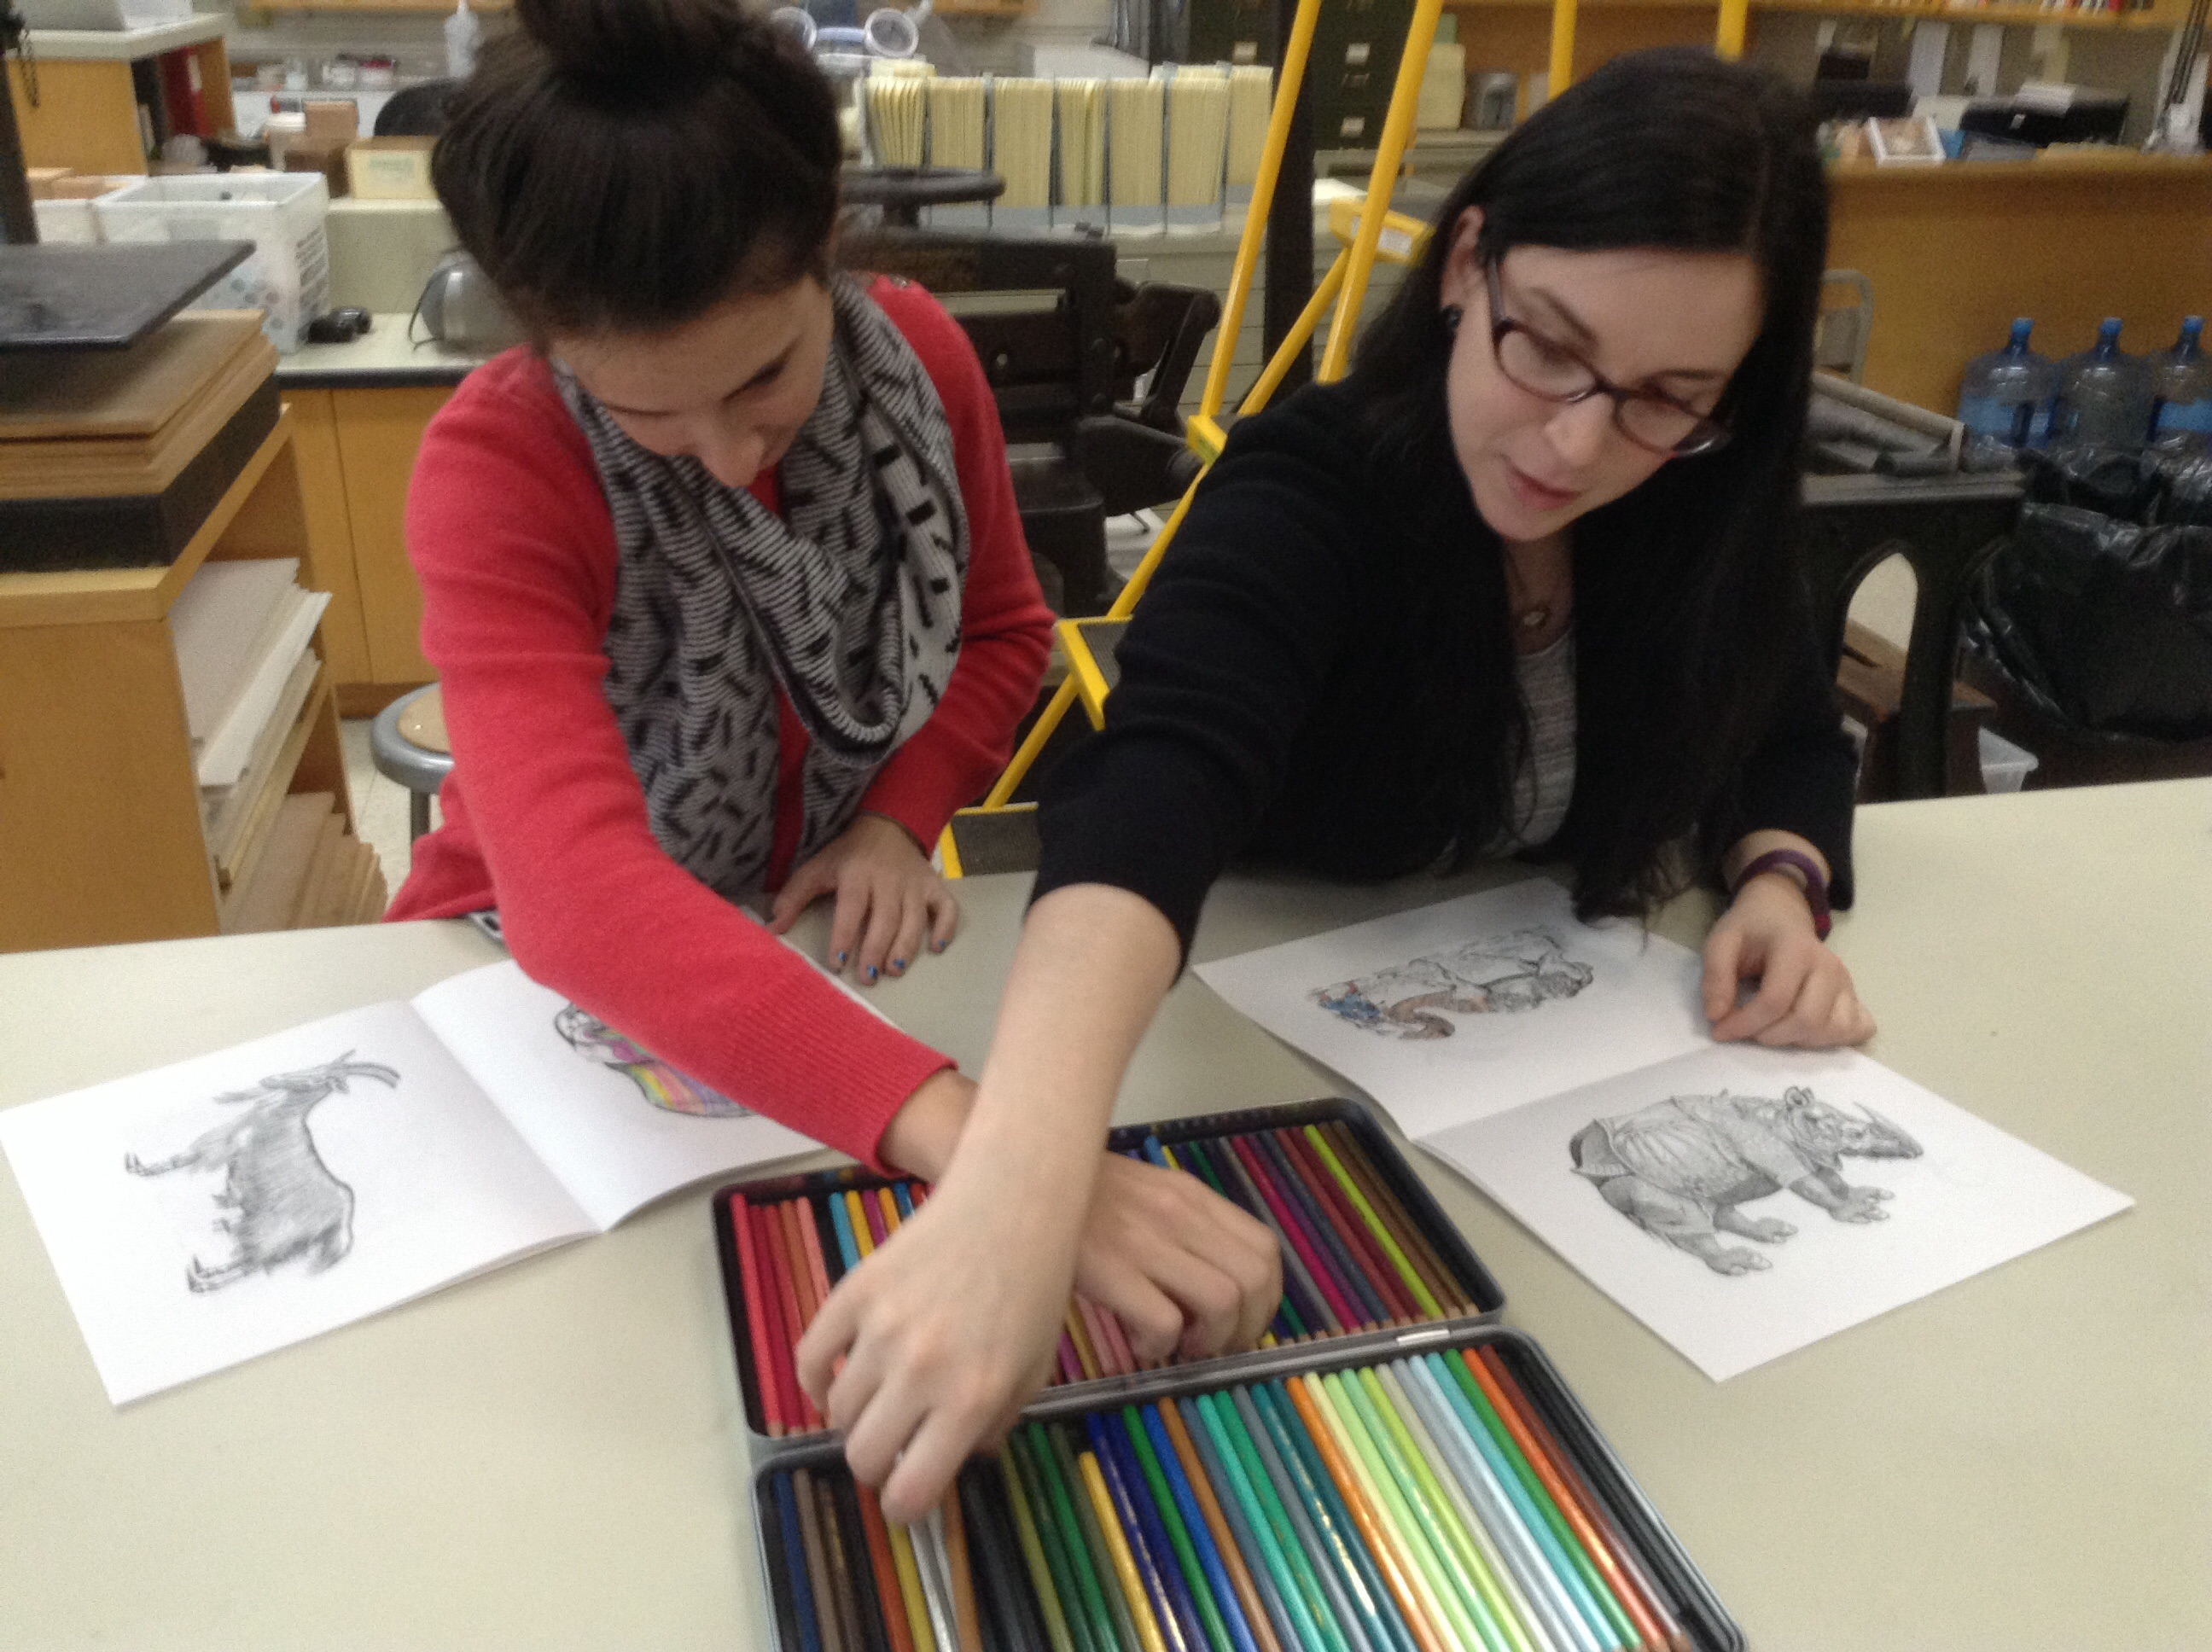 Collections Care Assistant Emily Moyer And Archivist Rebecca Pou ColorOurCollections